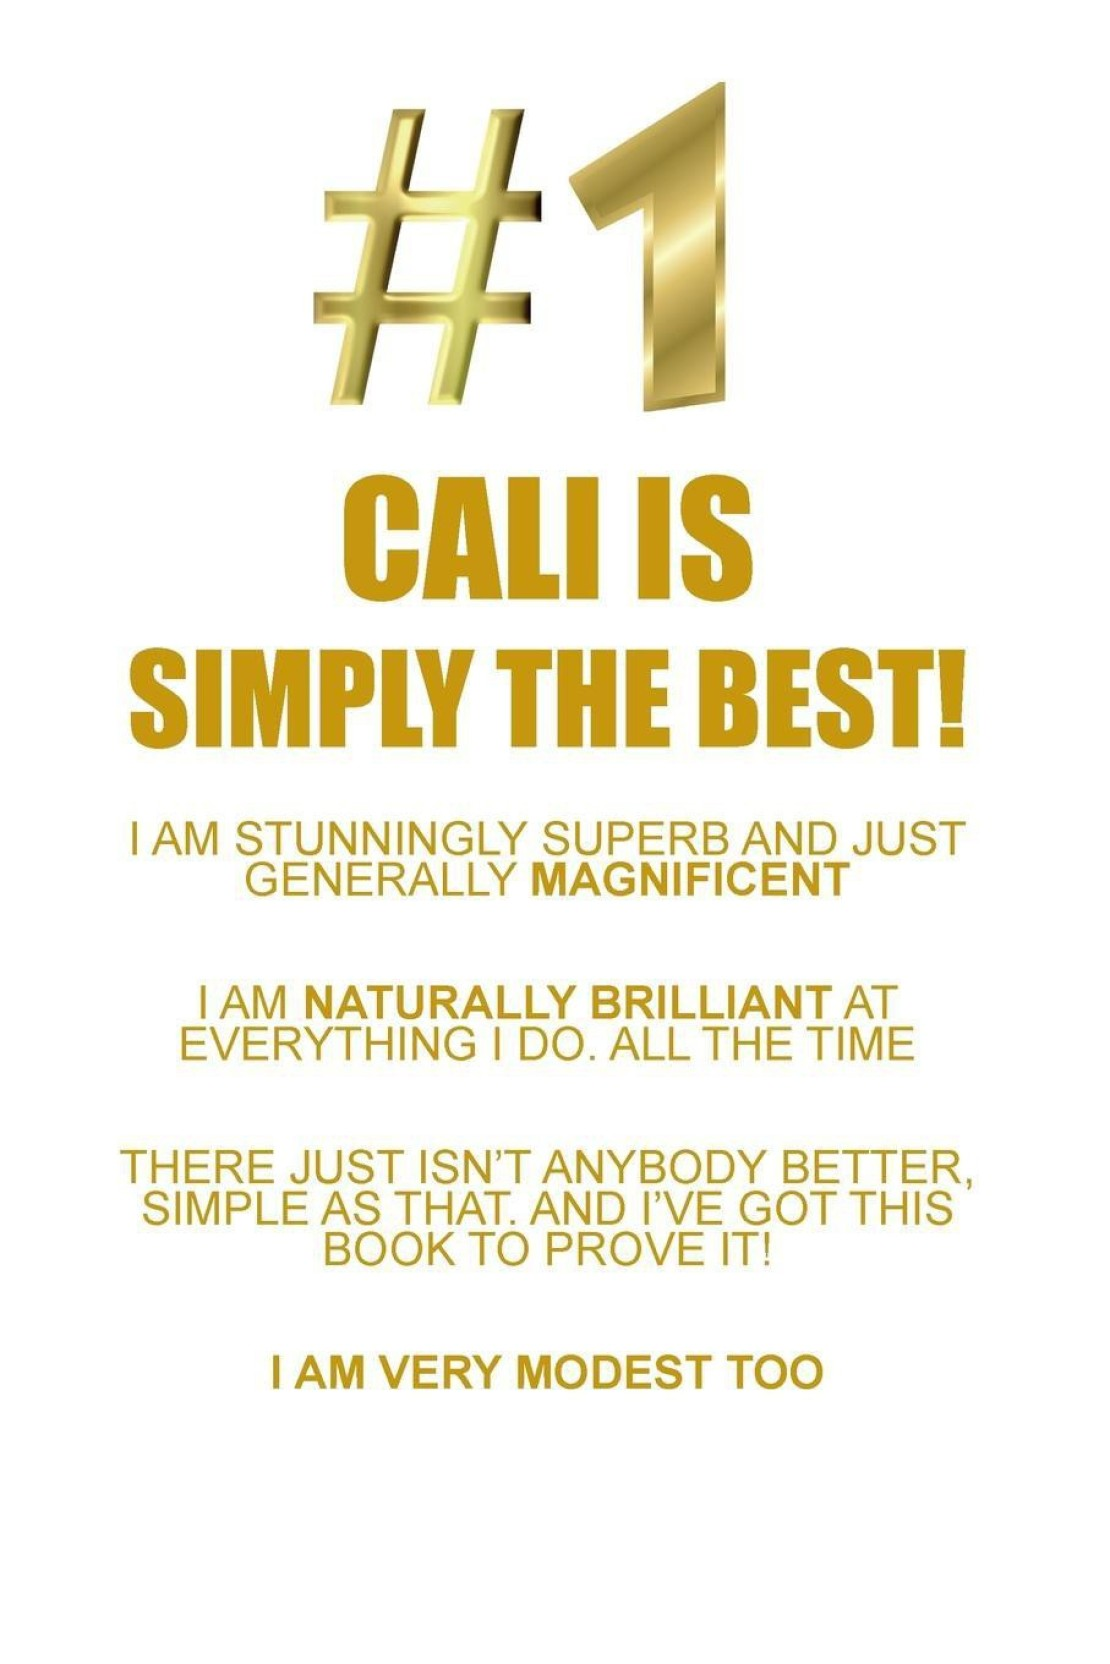 CALI IS SIMPLY THE BEST AFFIRMATIONS WORKBOOK Positive